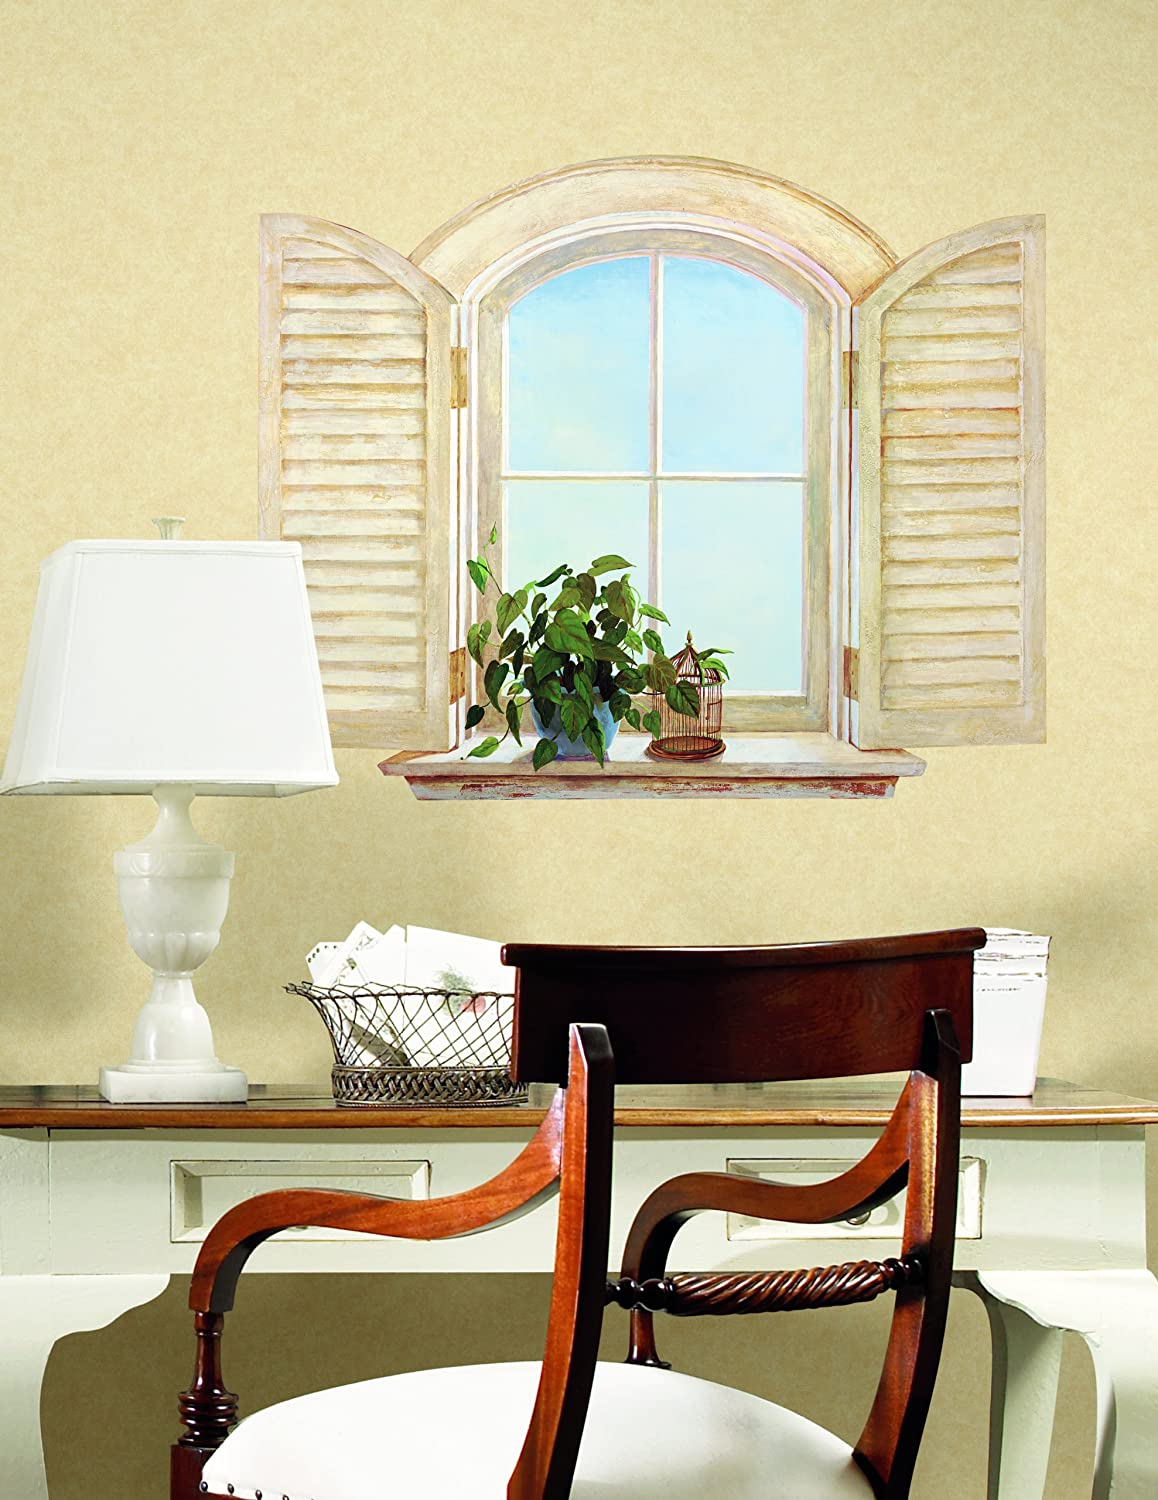 York Wallcoverings KT8579M Window with Shutters, Mural - Wall Murals ...